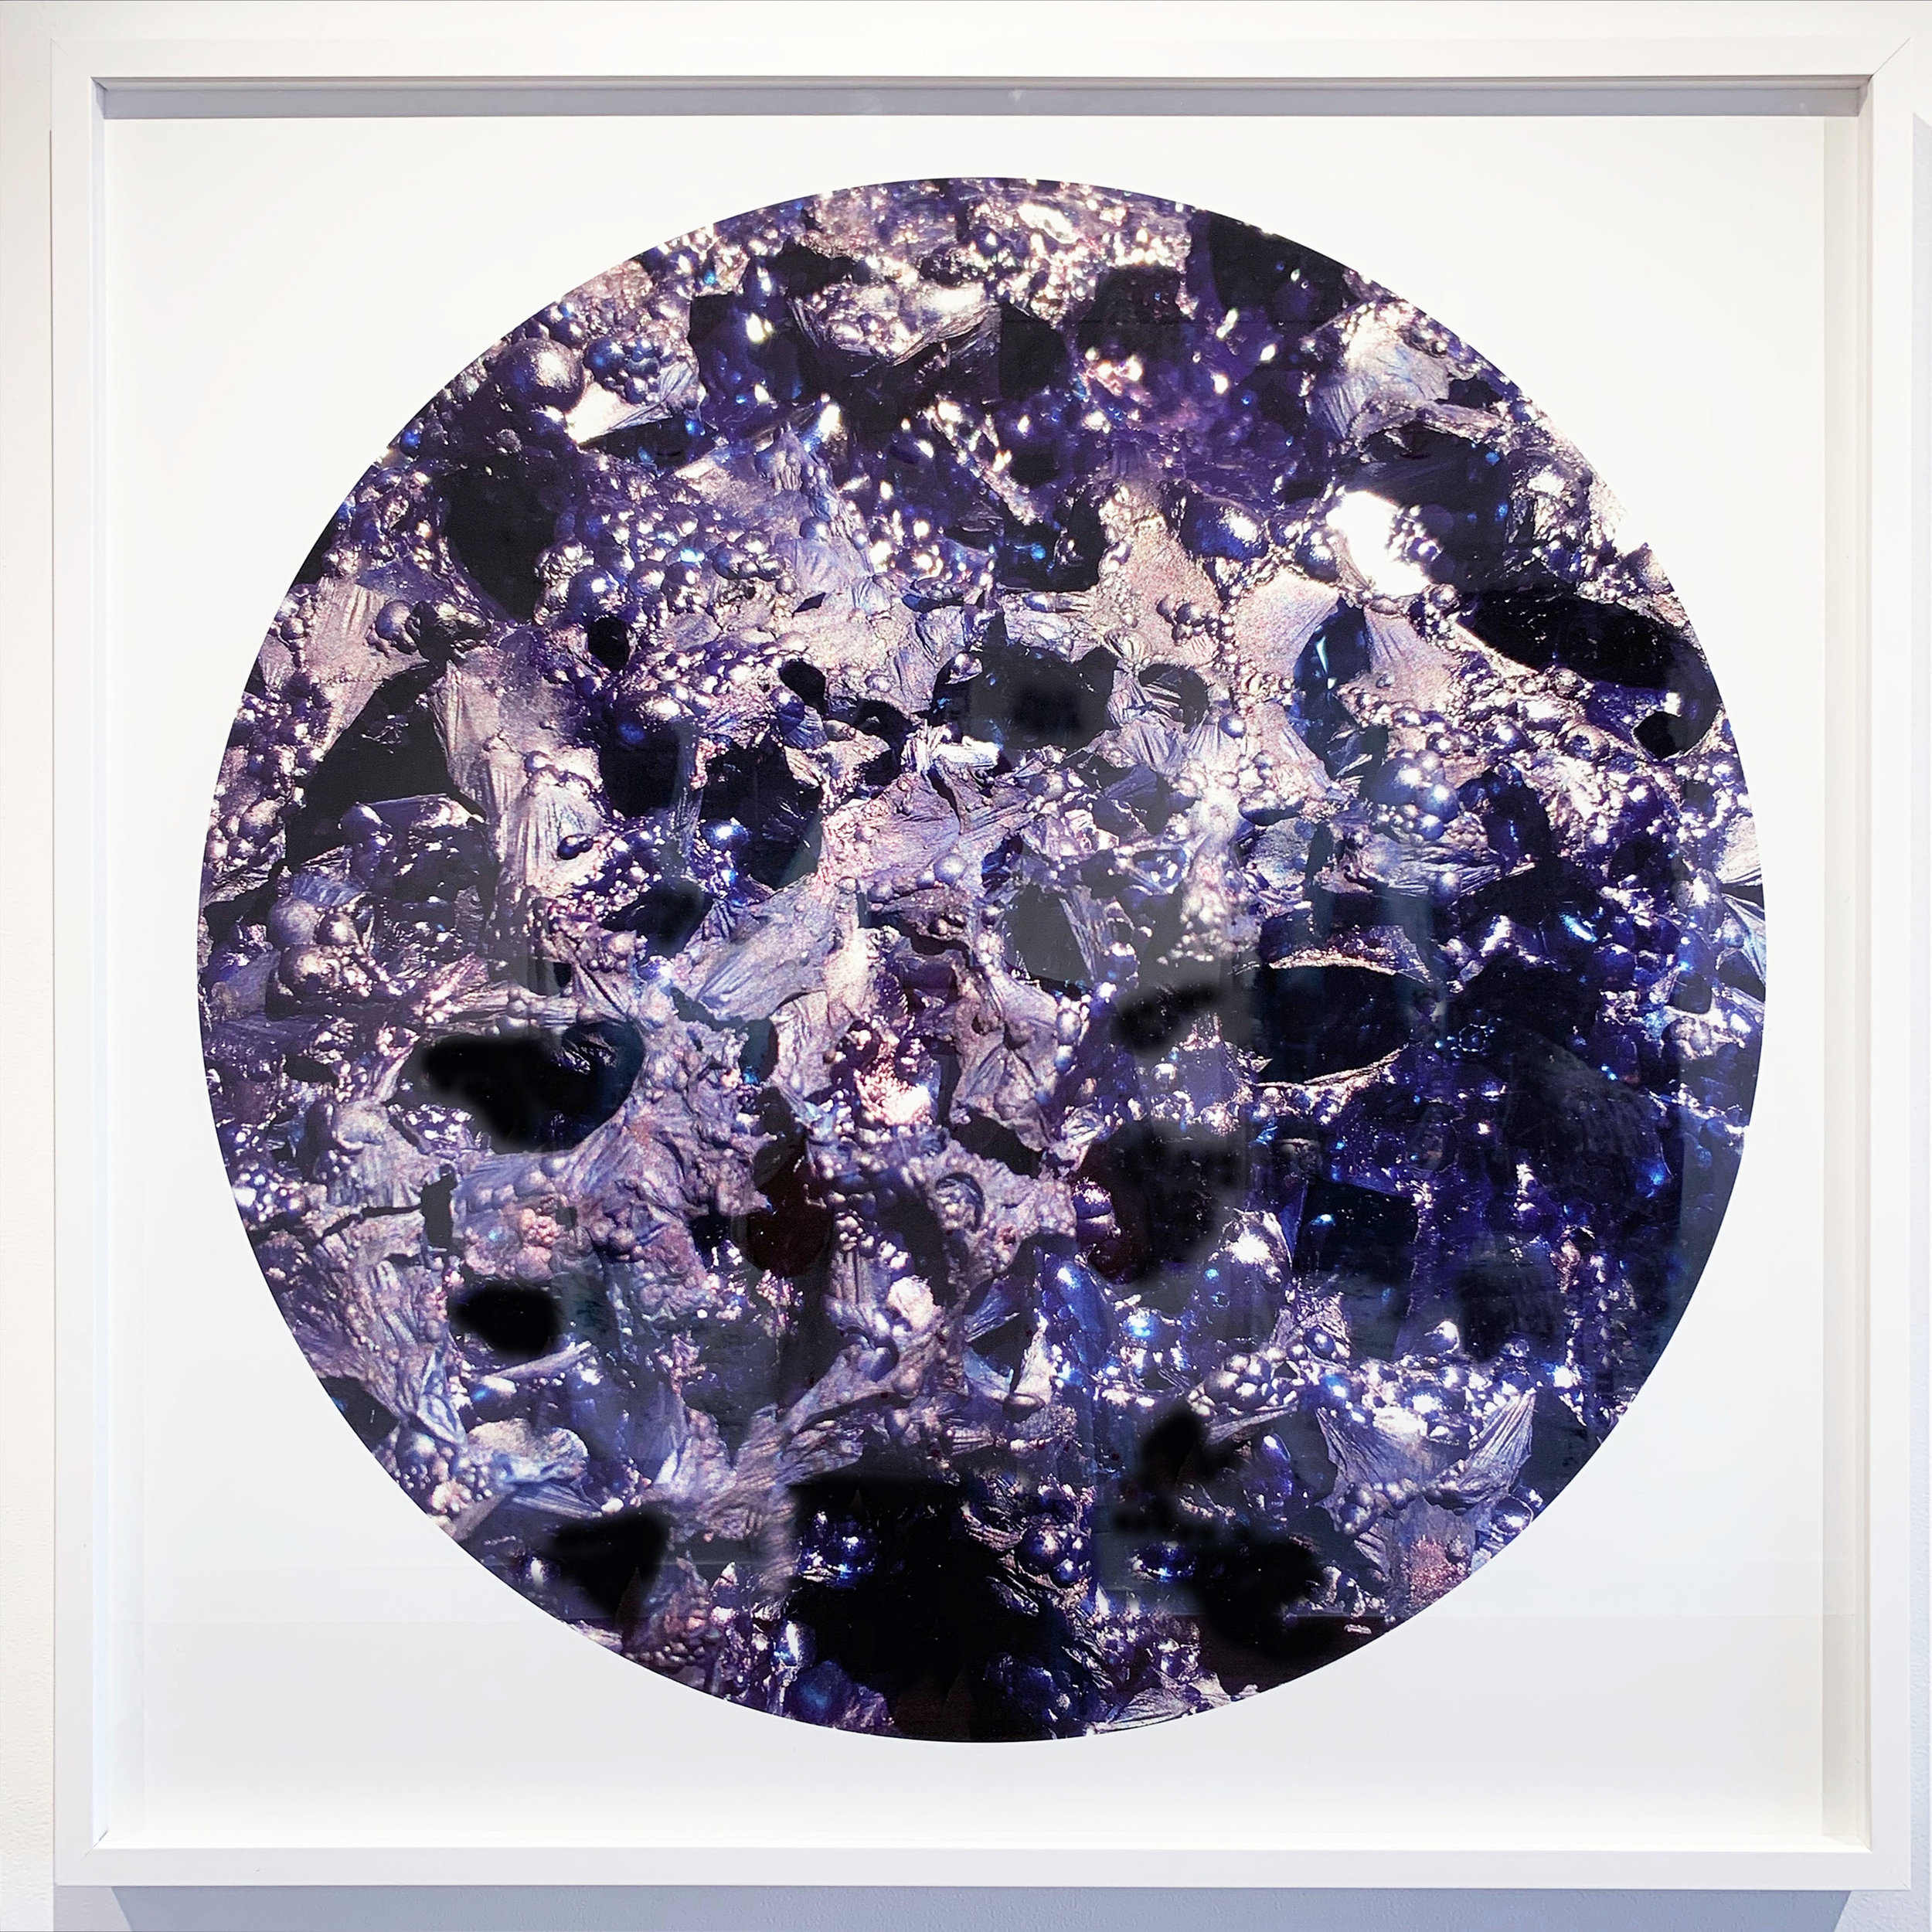 Pieces of Indigo Revealed  #4, 2019, digital print on archival rag paper, framed 90x90cm